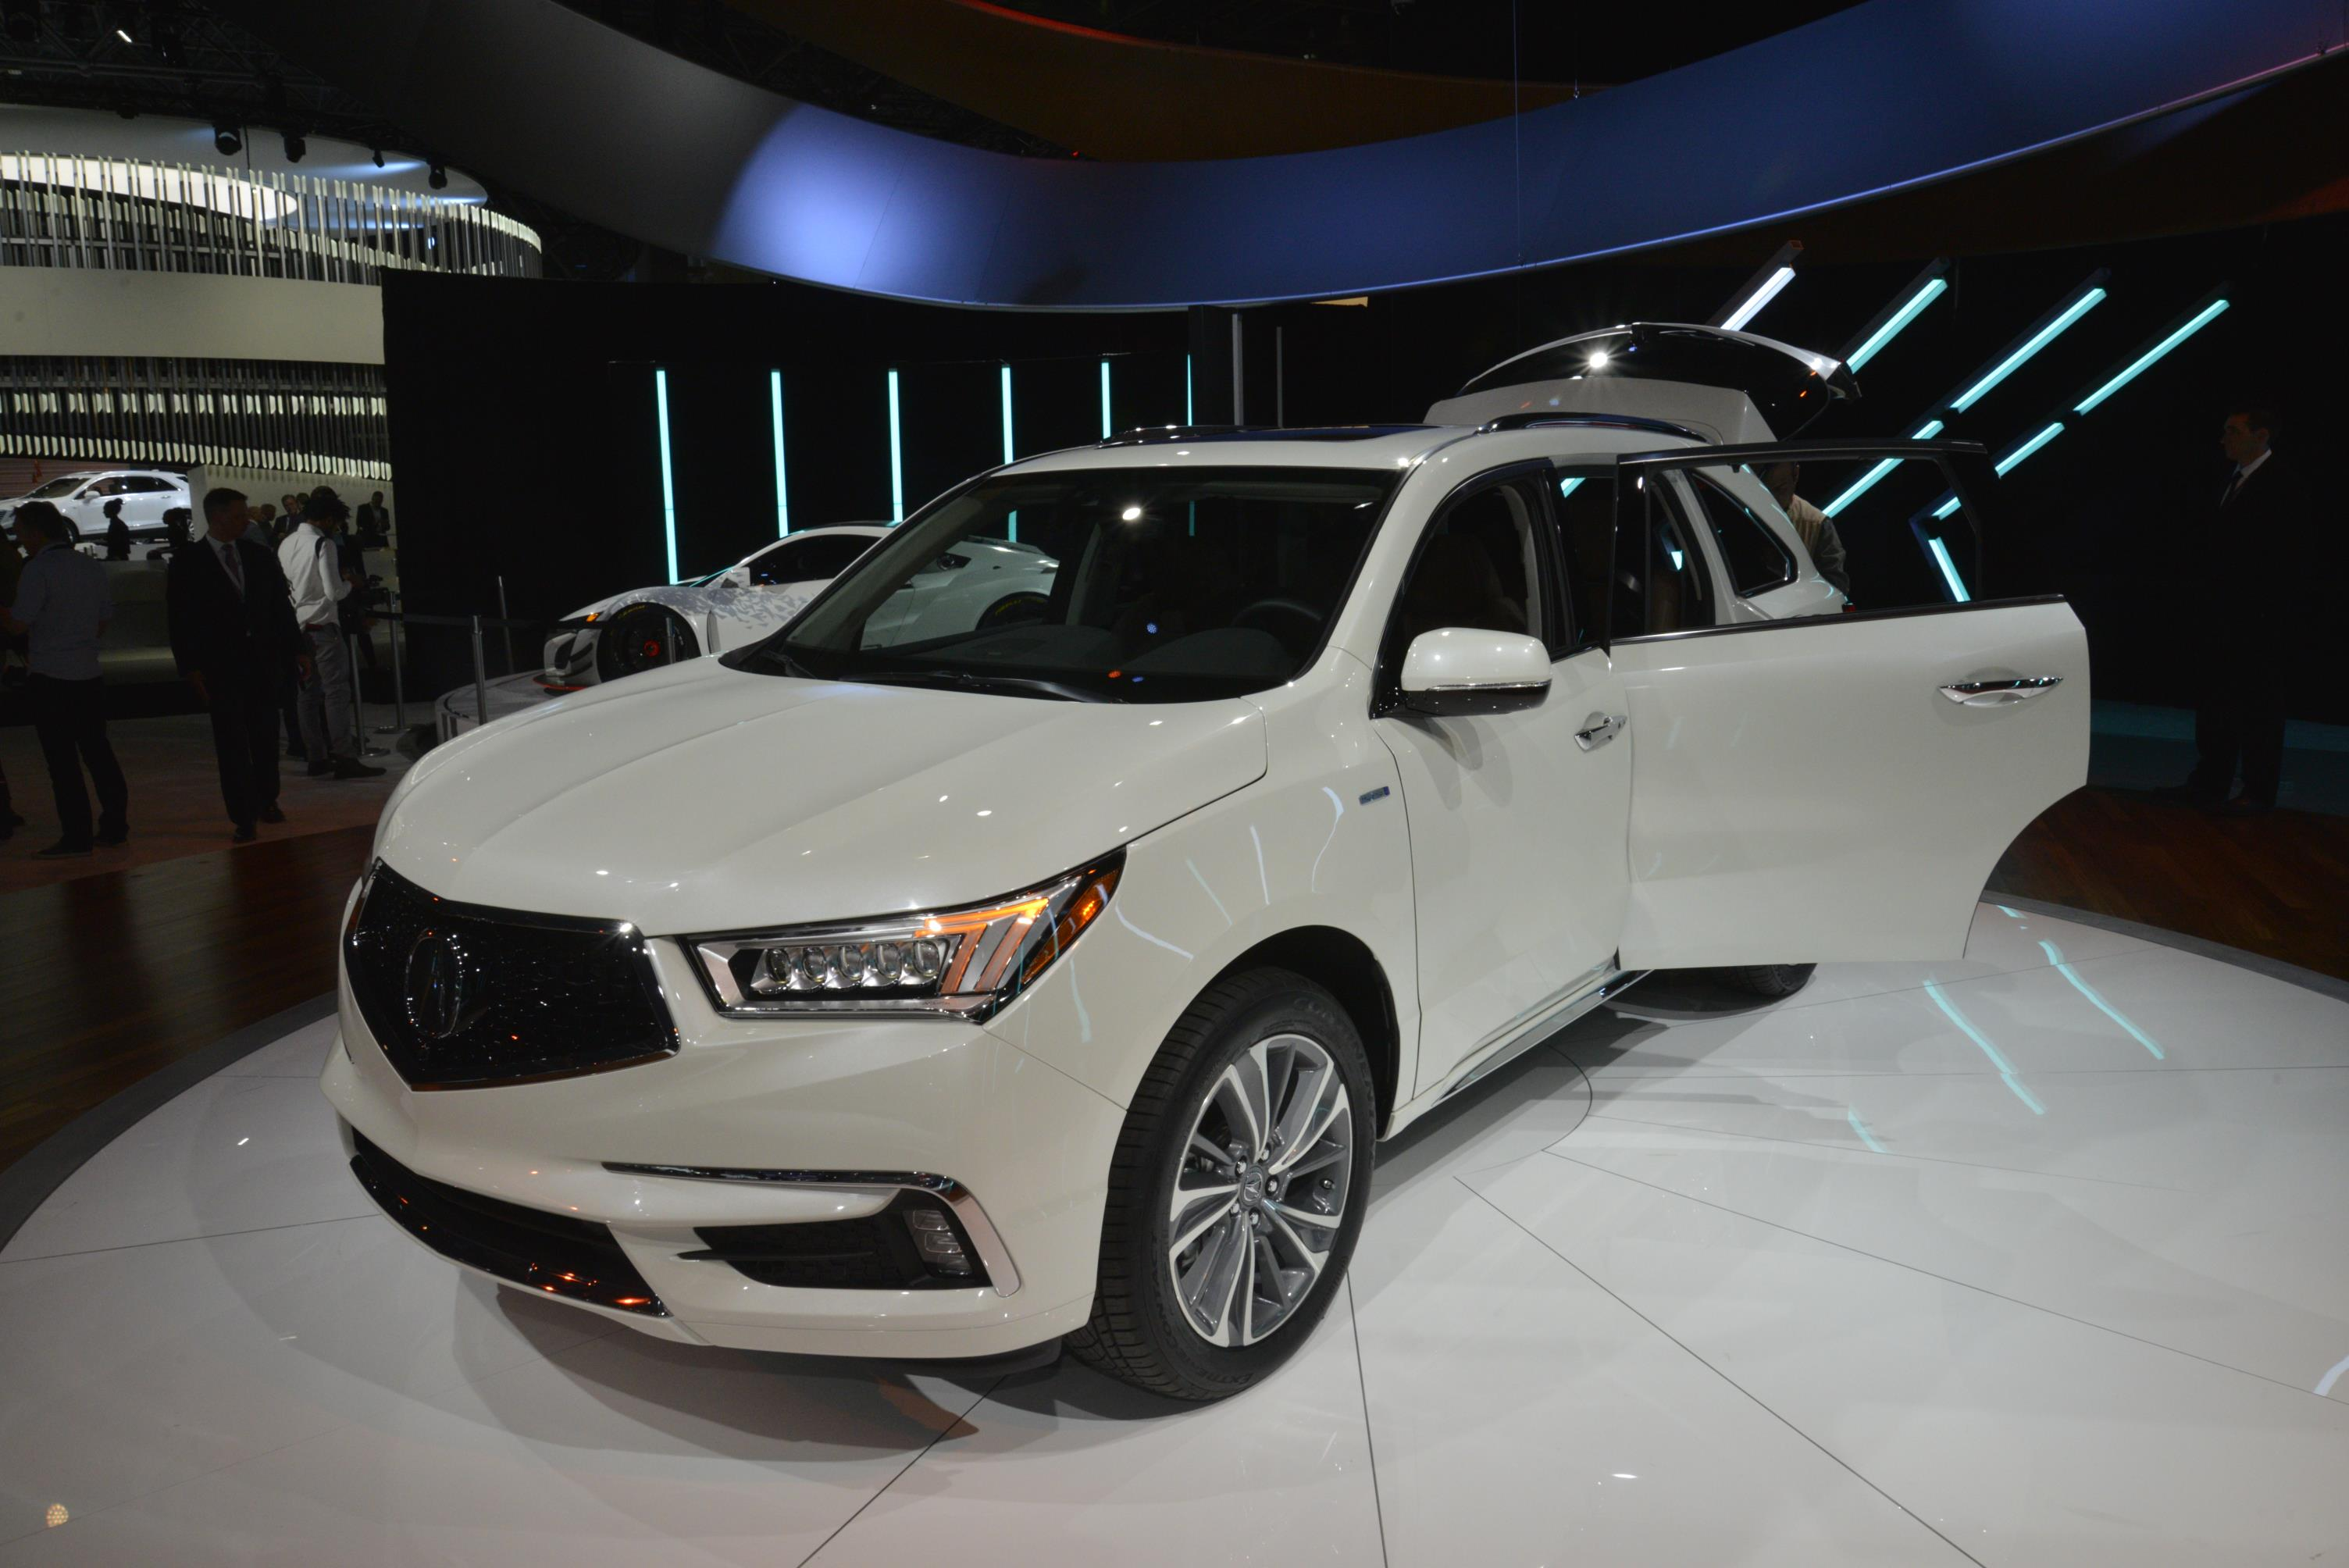 2017 Acura MDX Priced From $43,950, Sport Hybrid SH-AWD Due Later - autoevolution